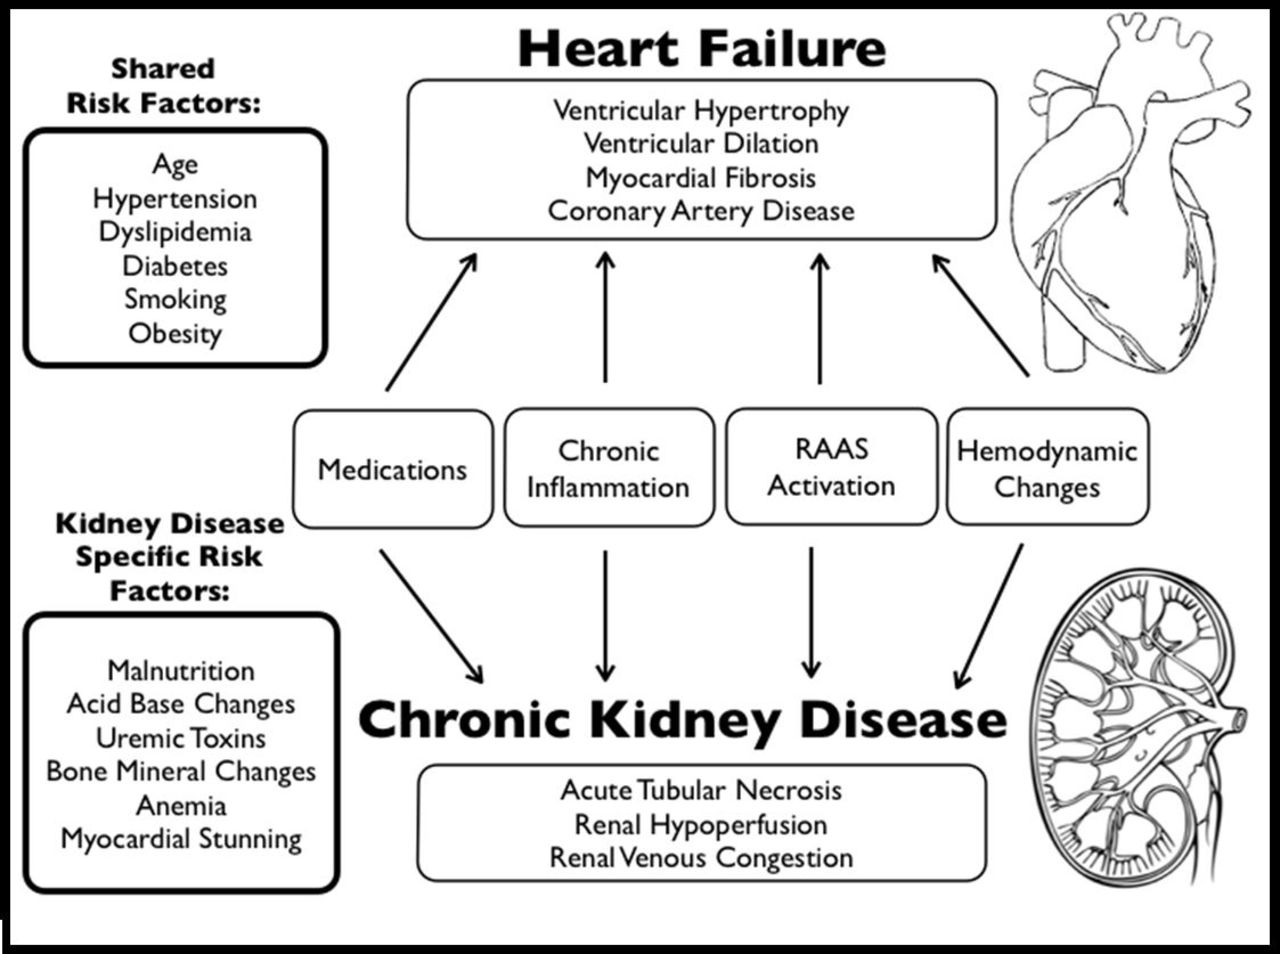 researchcommunication between patients with chronic kidney Low thyroid function common in chronic kidney disease date: june 11, 2008 source: american society of nephrology summary: many patients with chronic kidney disease have mild reductions in thyroid.